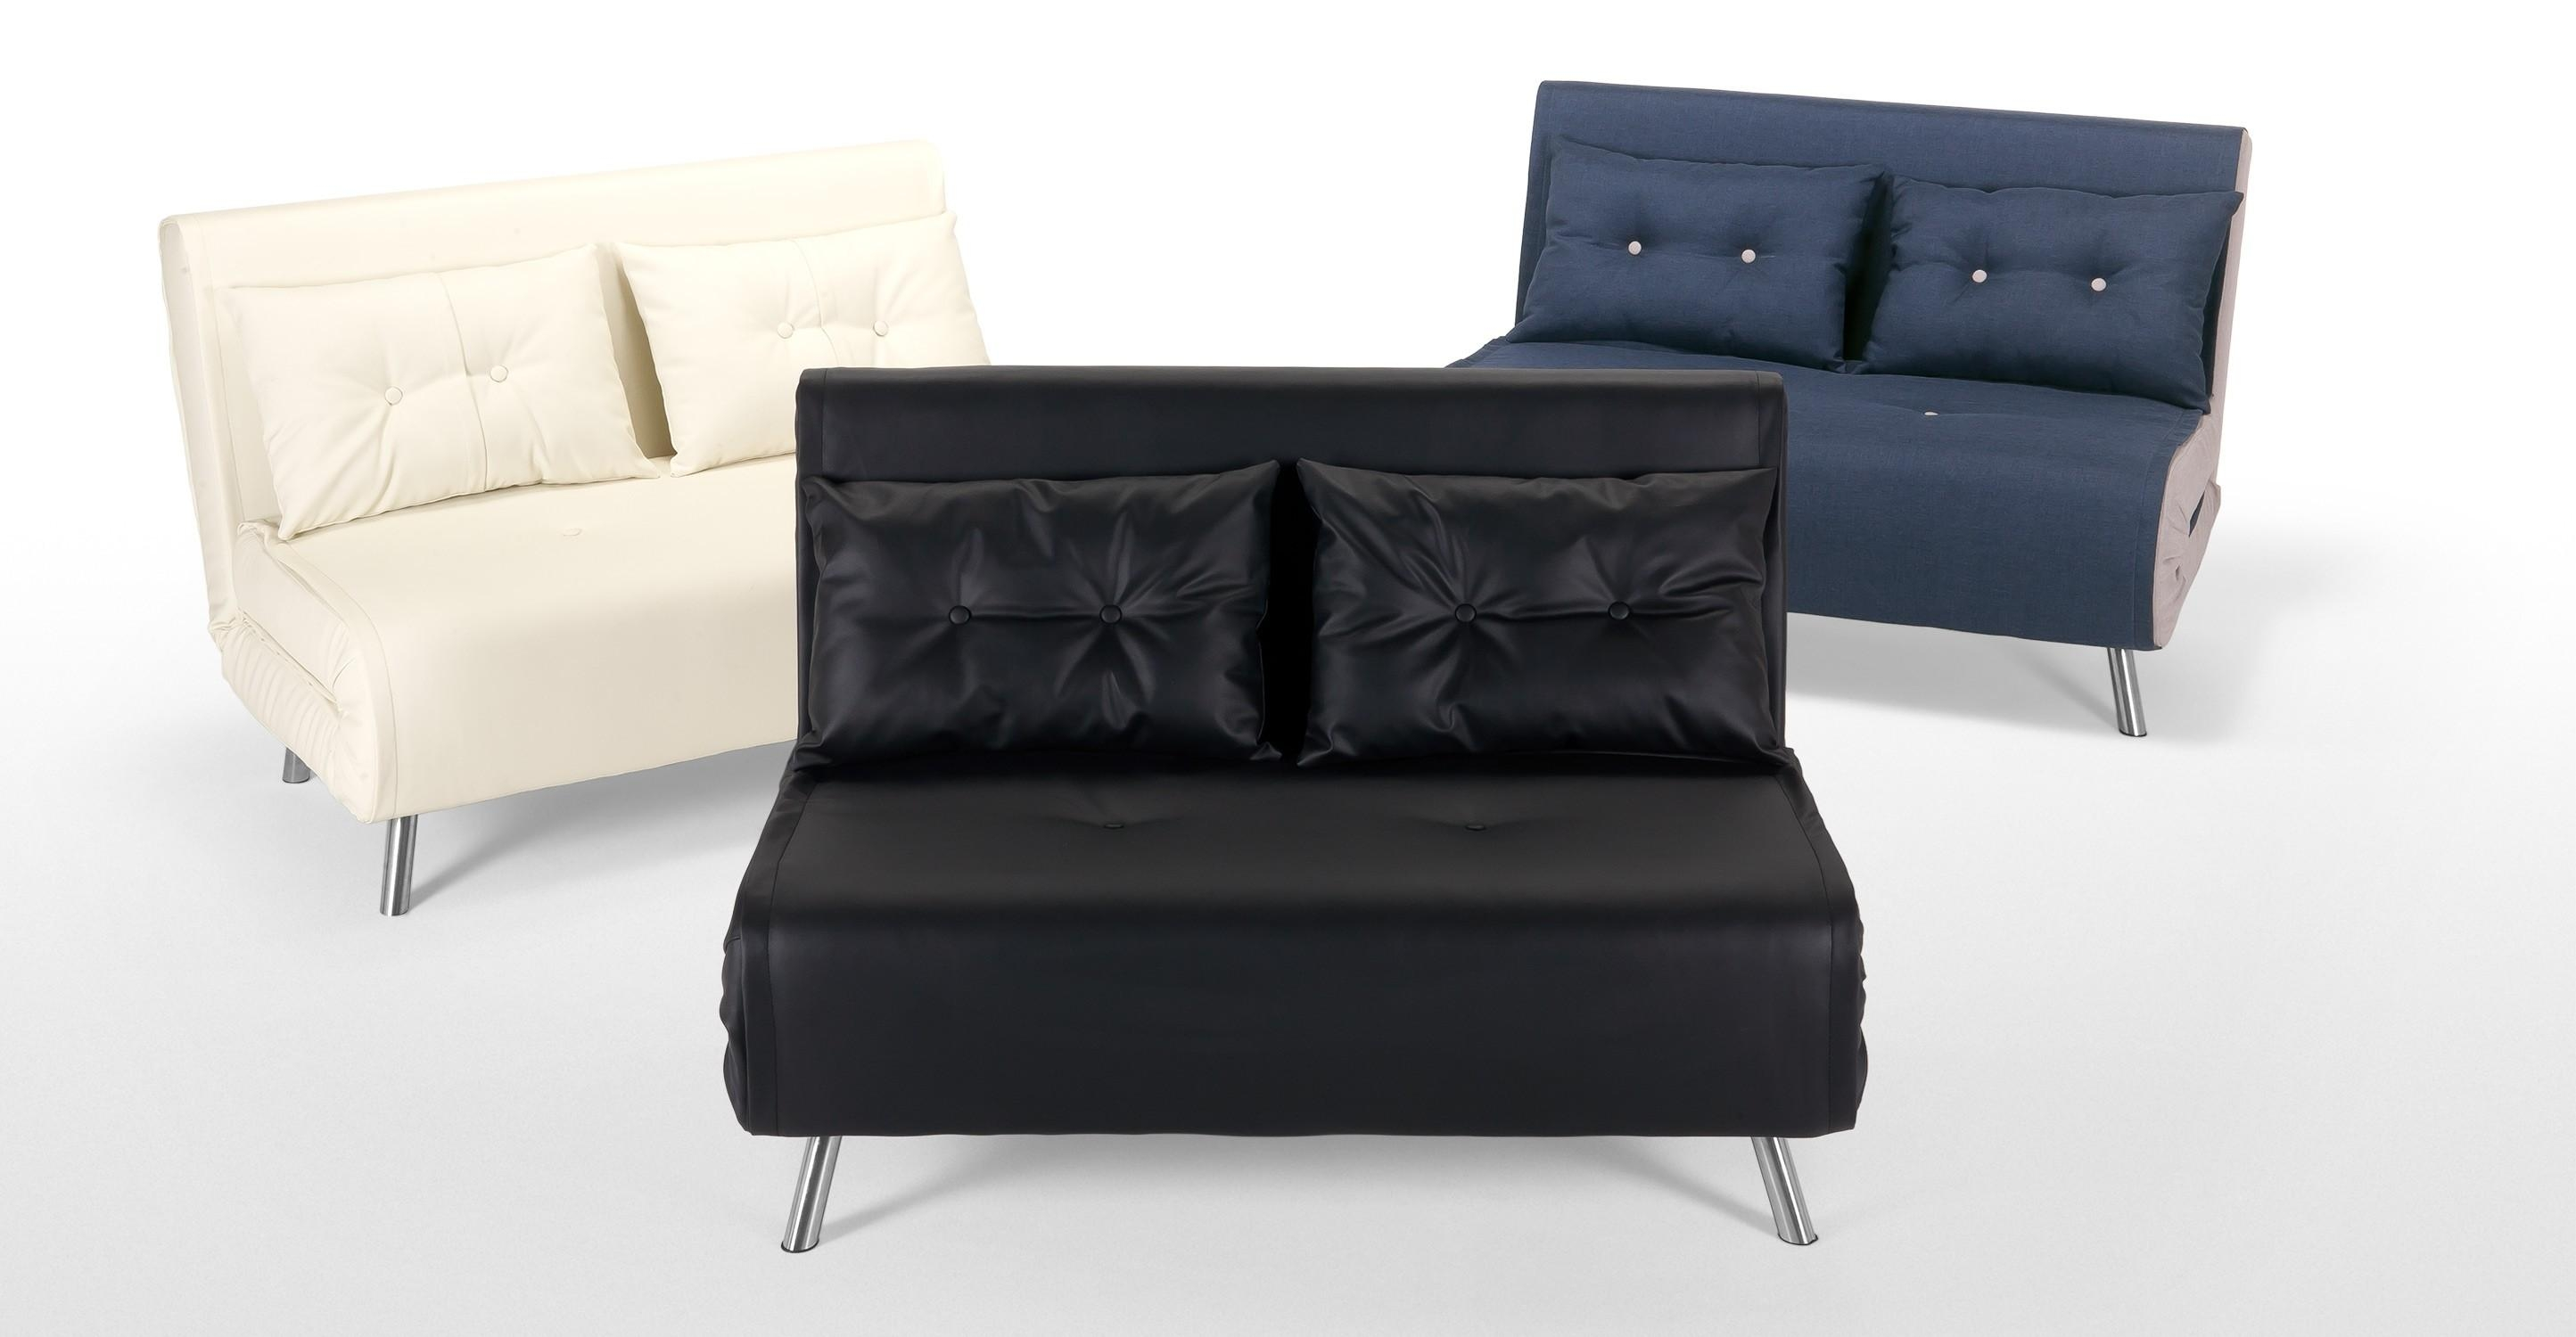 Small Office Sofa With Concept Hd Images 23866 | Kengire For Small Office Sofas (Image 15 of 20)